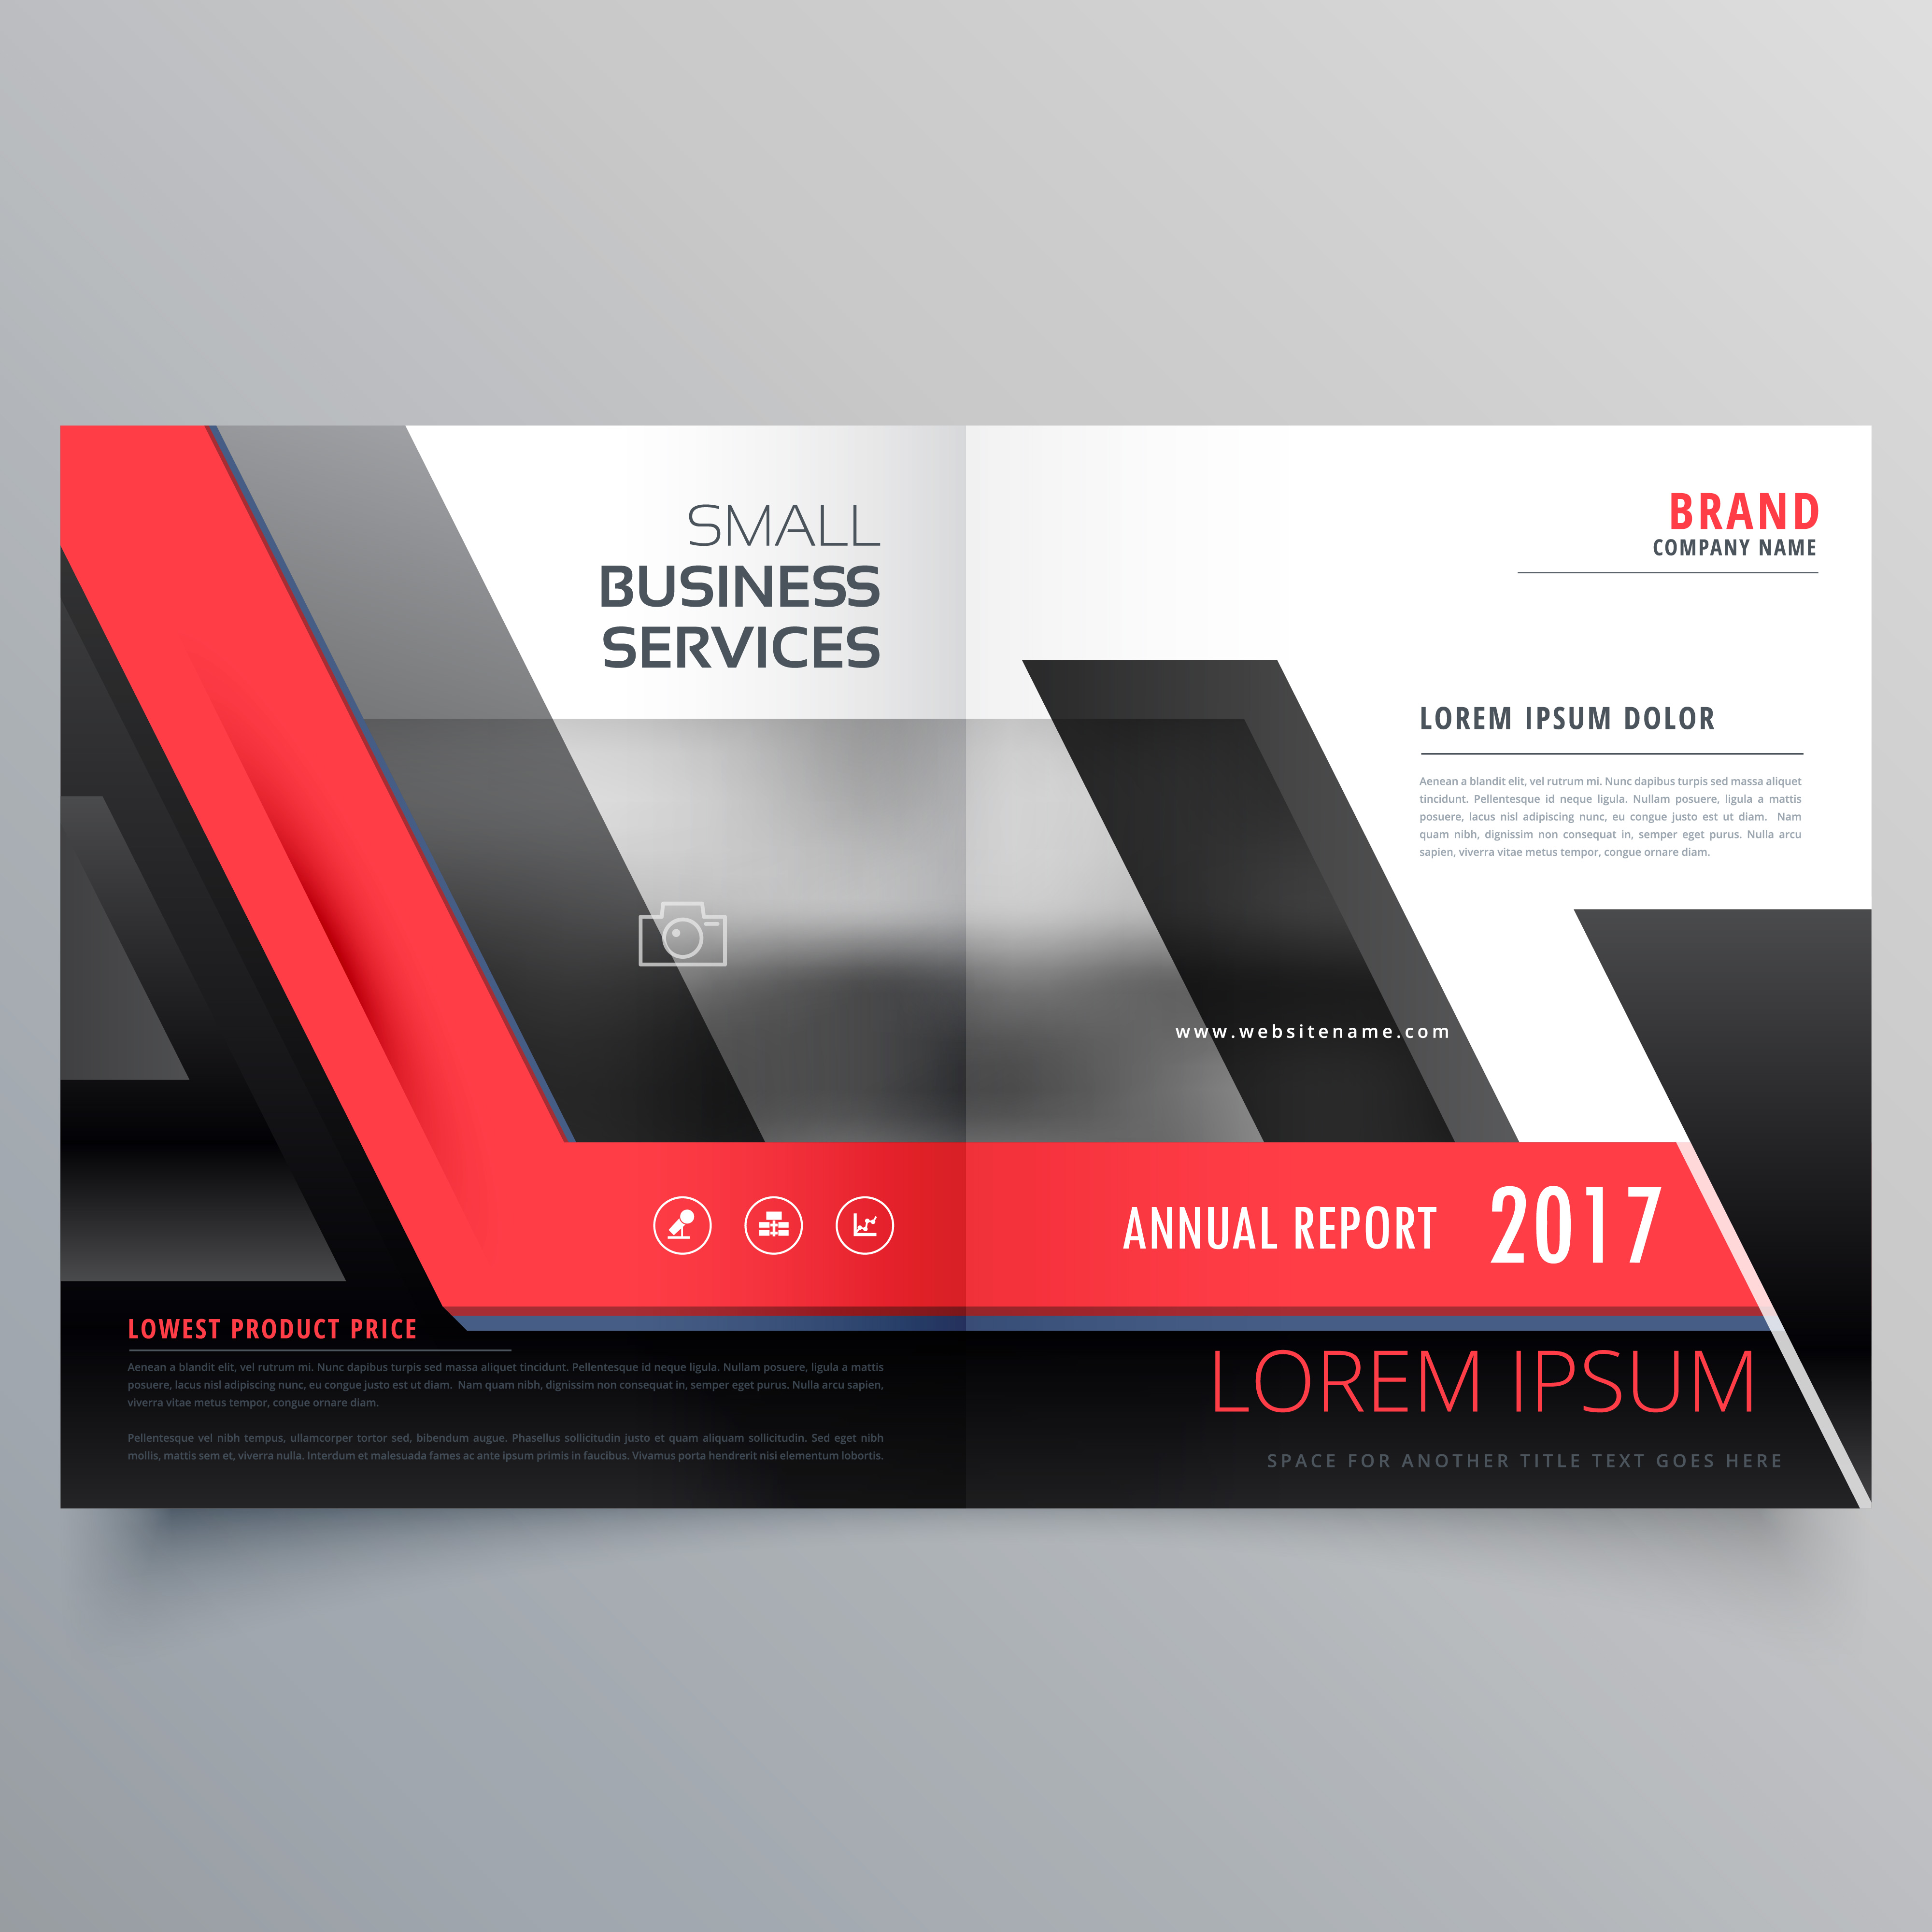 red and black bifold creative brochure design template